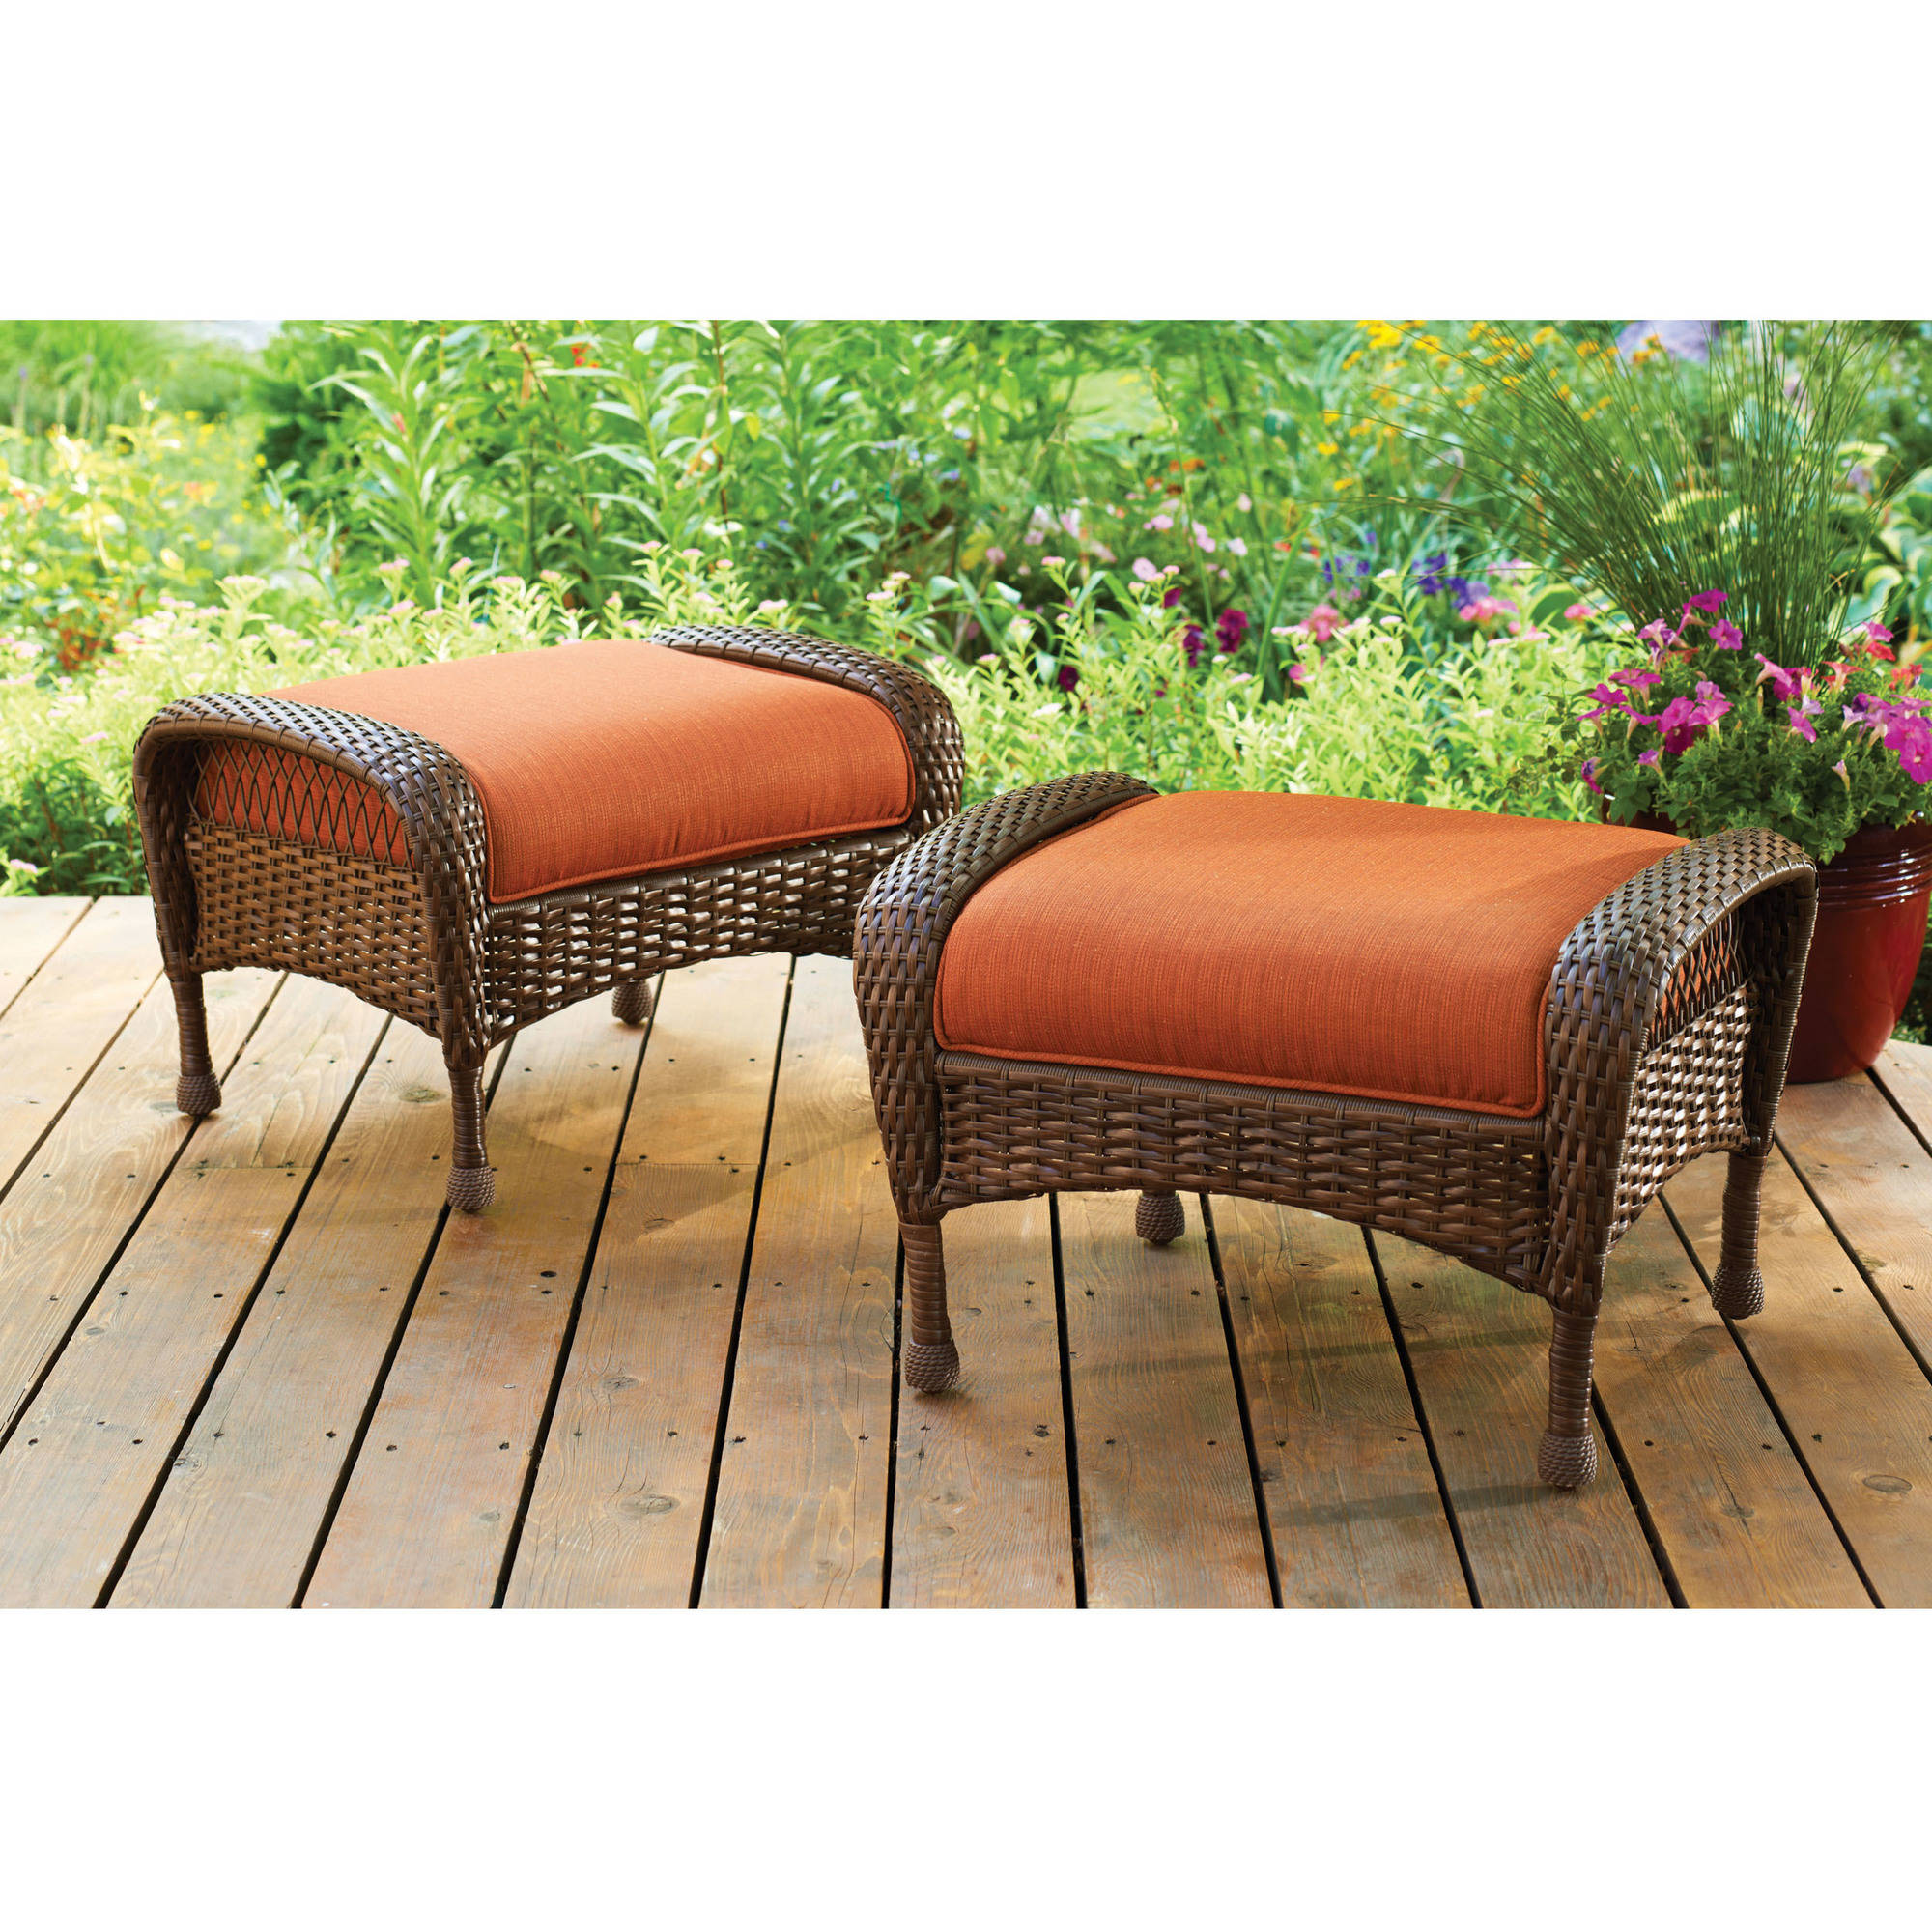 Better Homes And Gardens Azalea Ridge Ottomans, Set Of 2